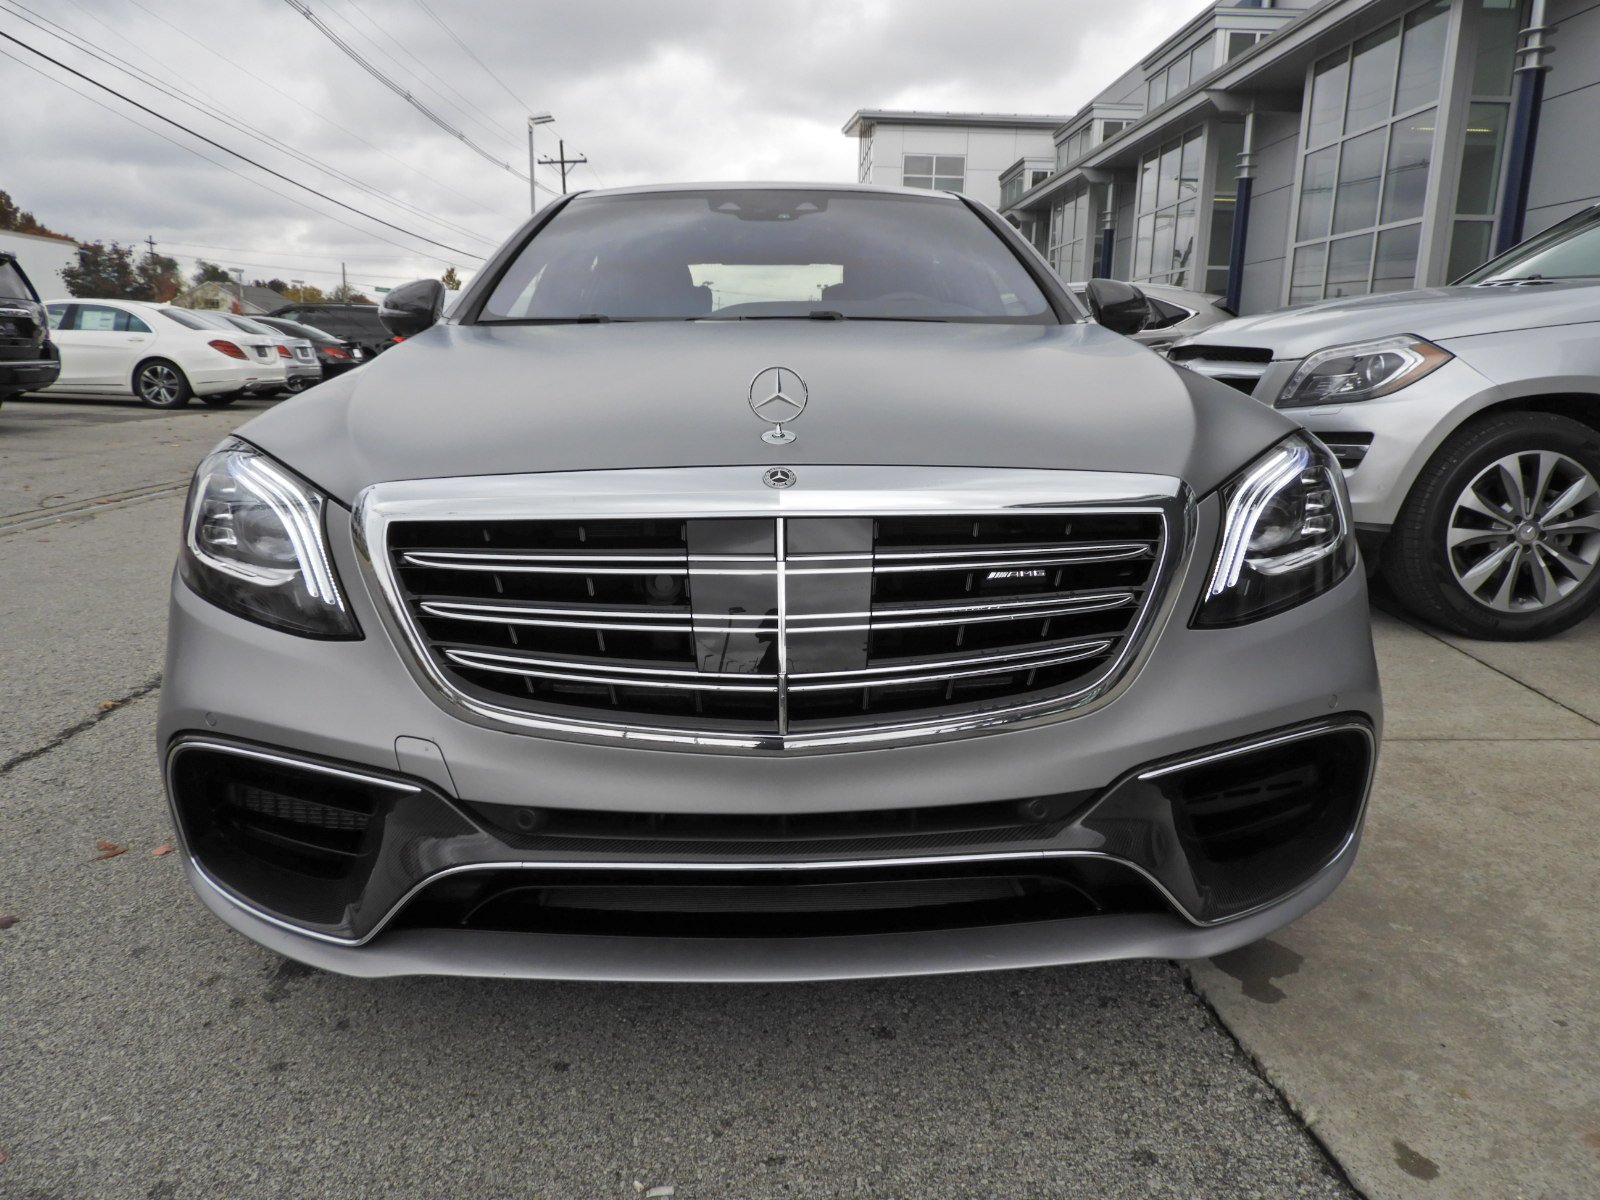 Certified Pre Owned 2018 Mercedes Benz S Class S 63 AMG 4MATIC